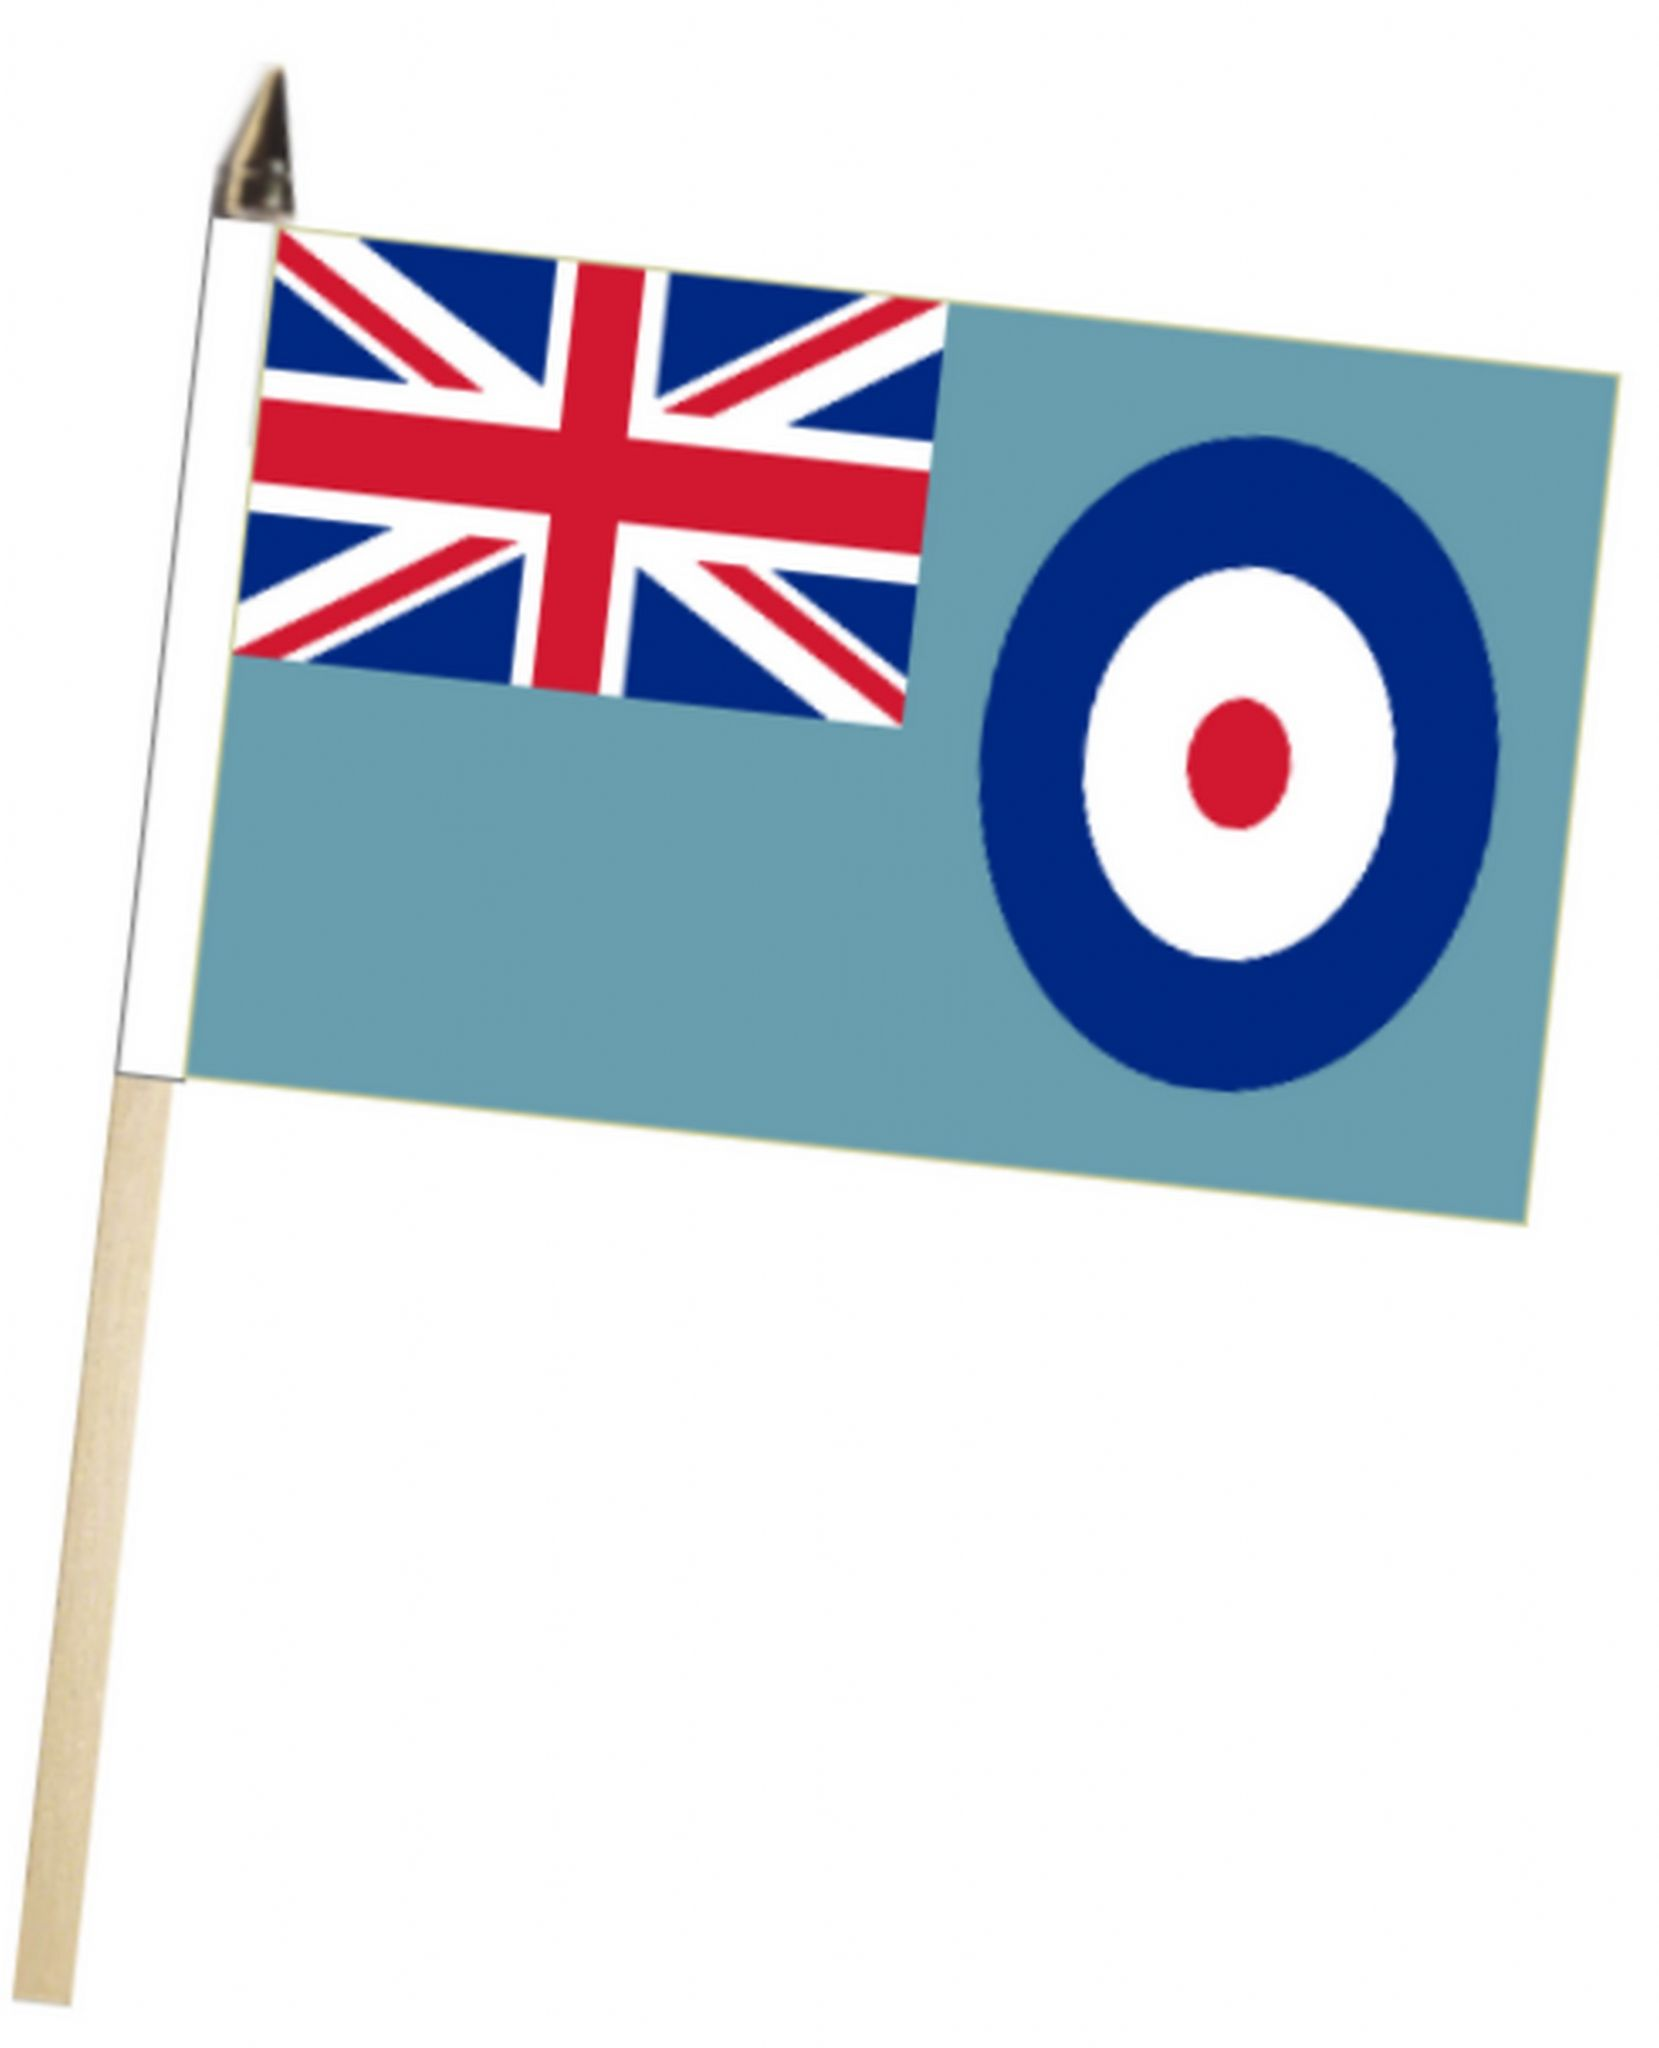 Royal Air Force RAF Ensign Large Hand Waving Flag